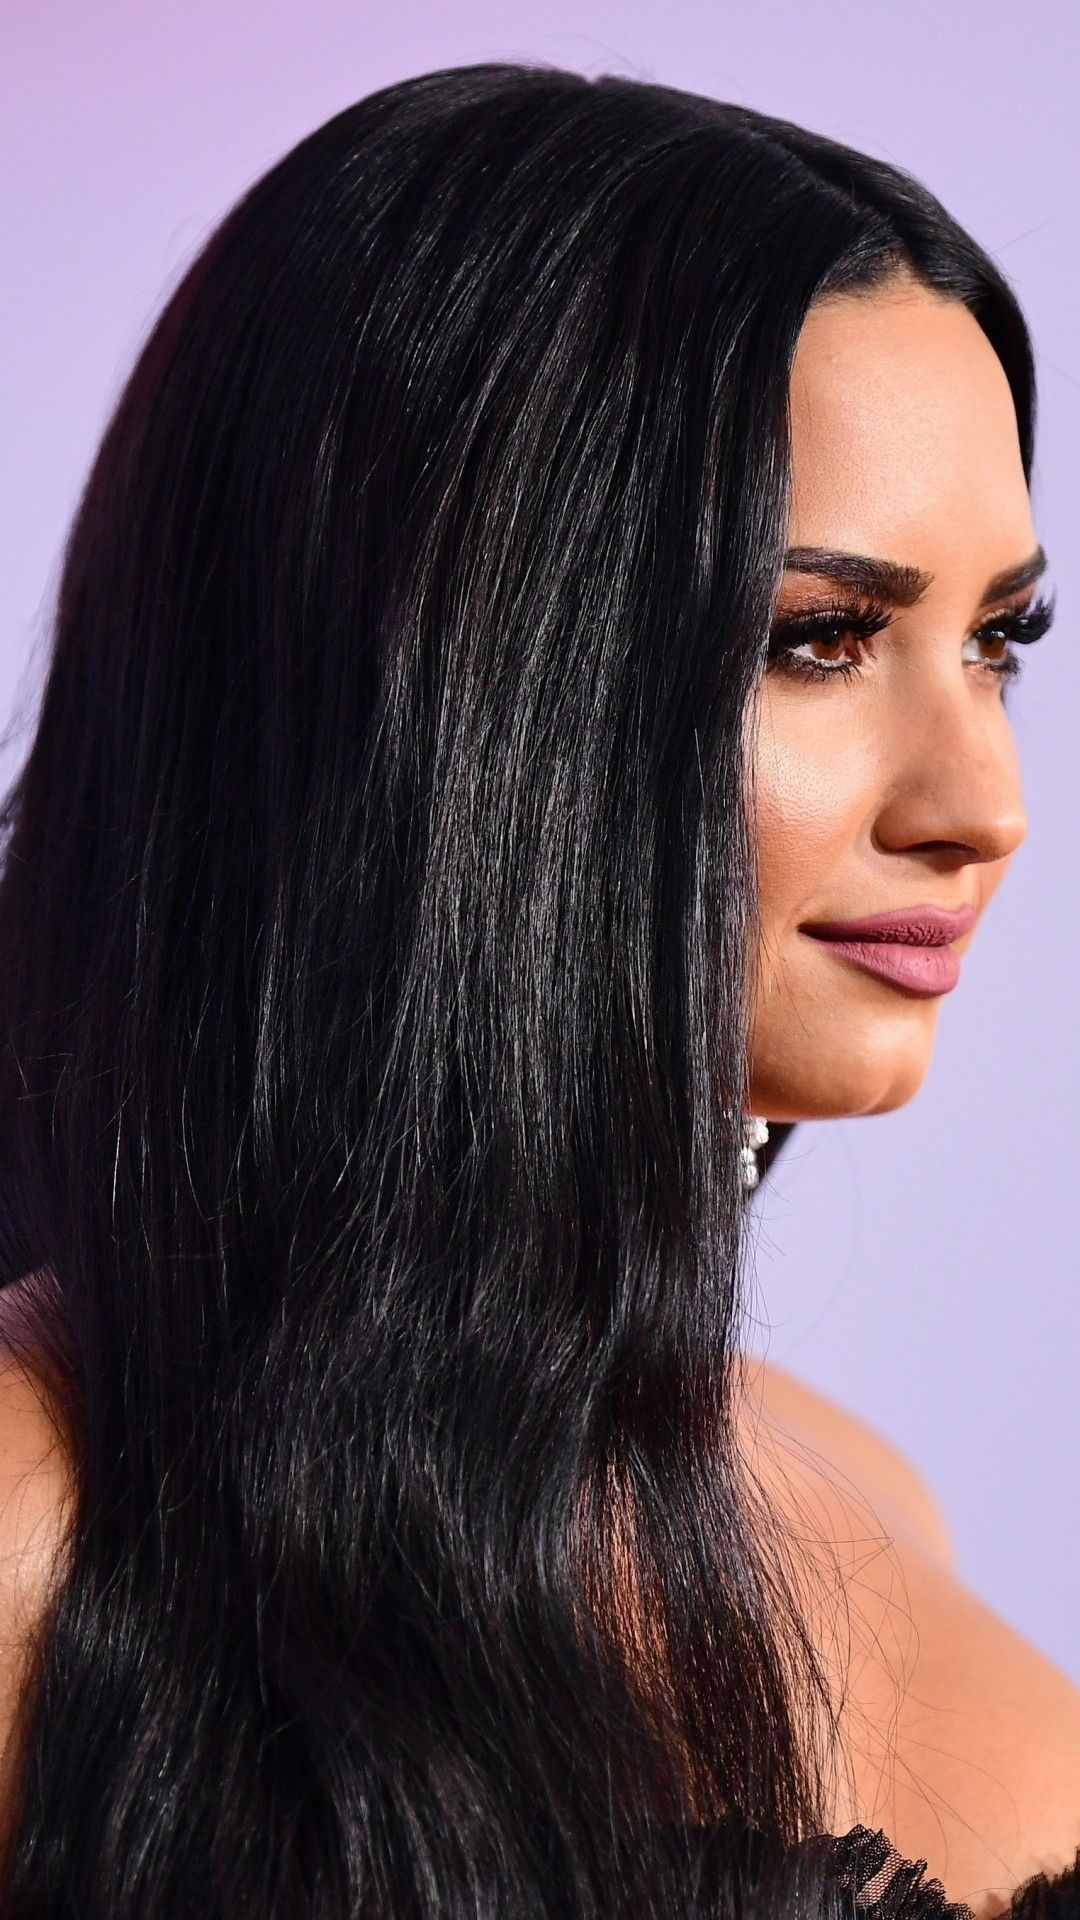 Wallpaper Phone Demi Lovato Full Hd Demi Lovato Long Hair Styles Hair Styles